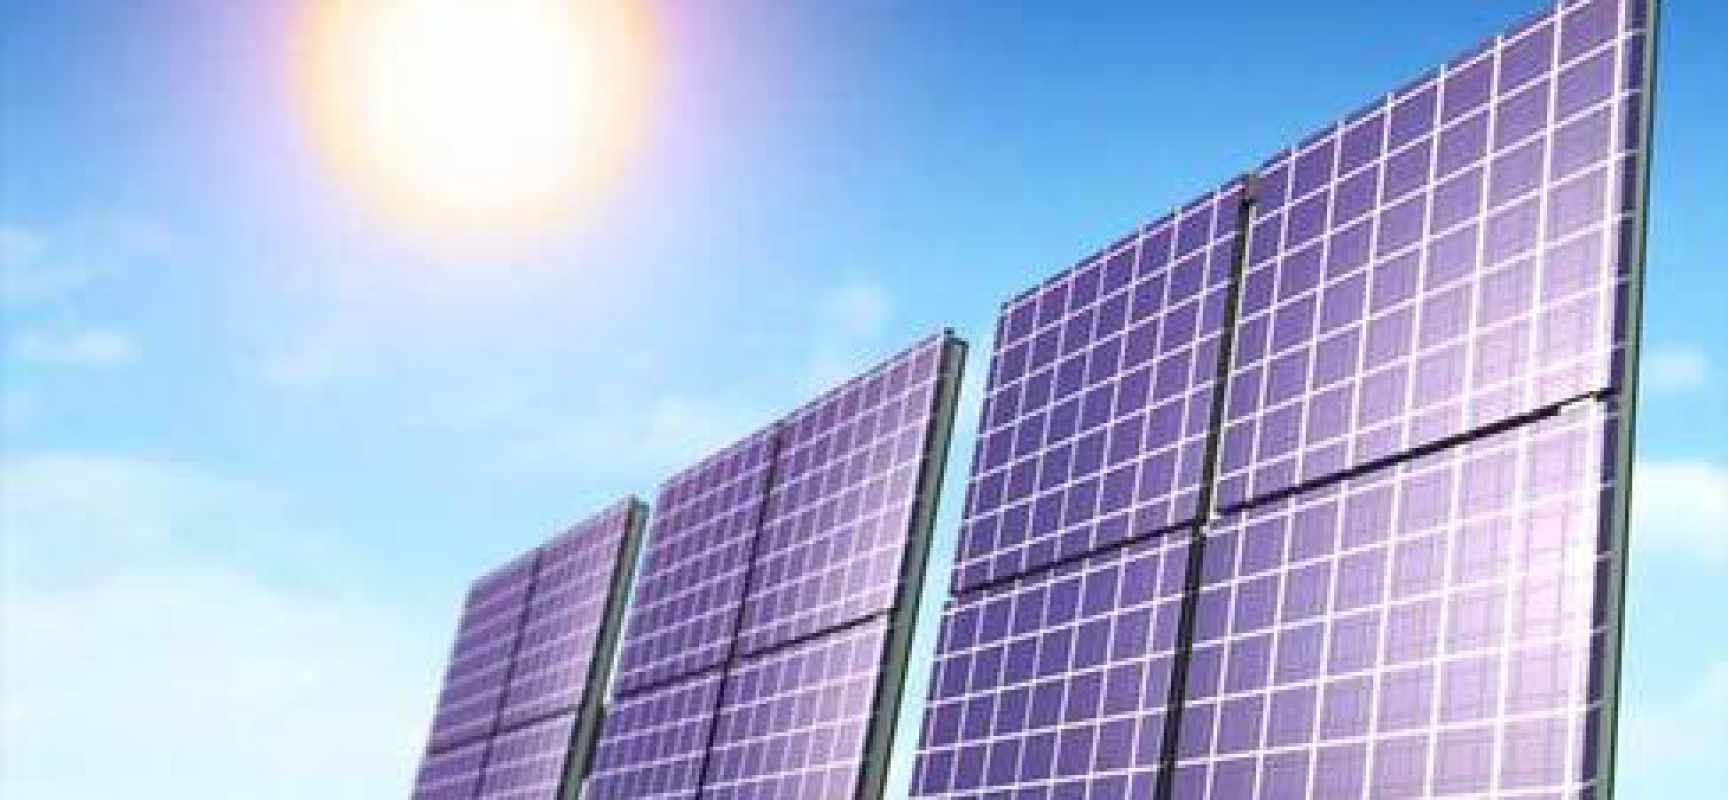 Solar Power | Advantages and Disadvantages of Solar Power